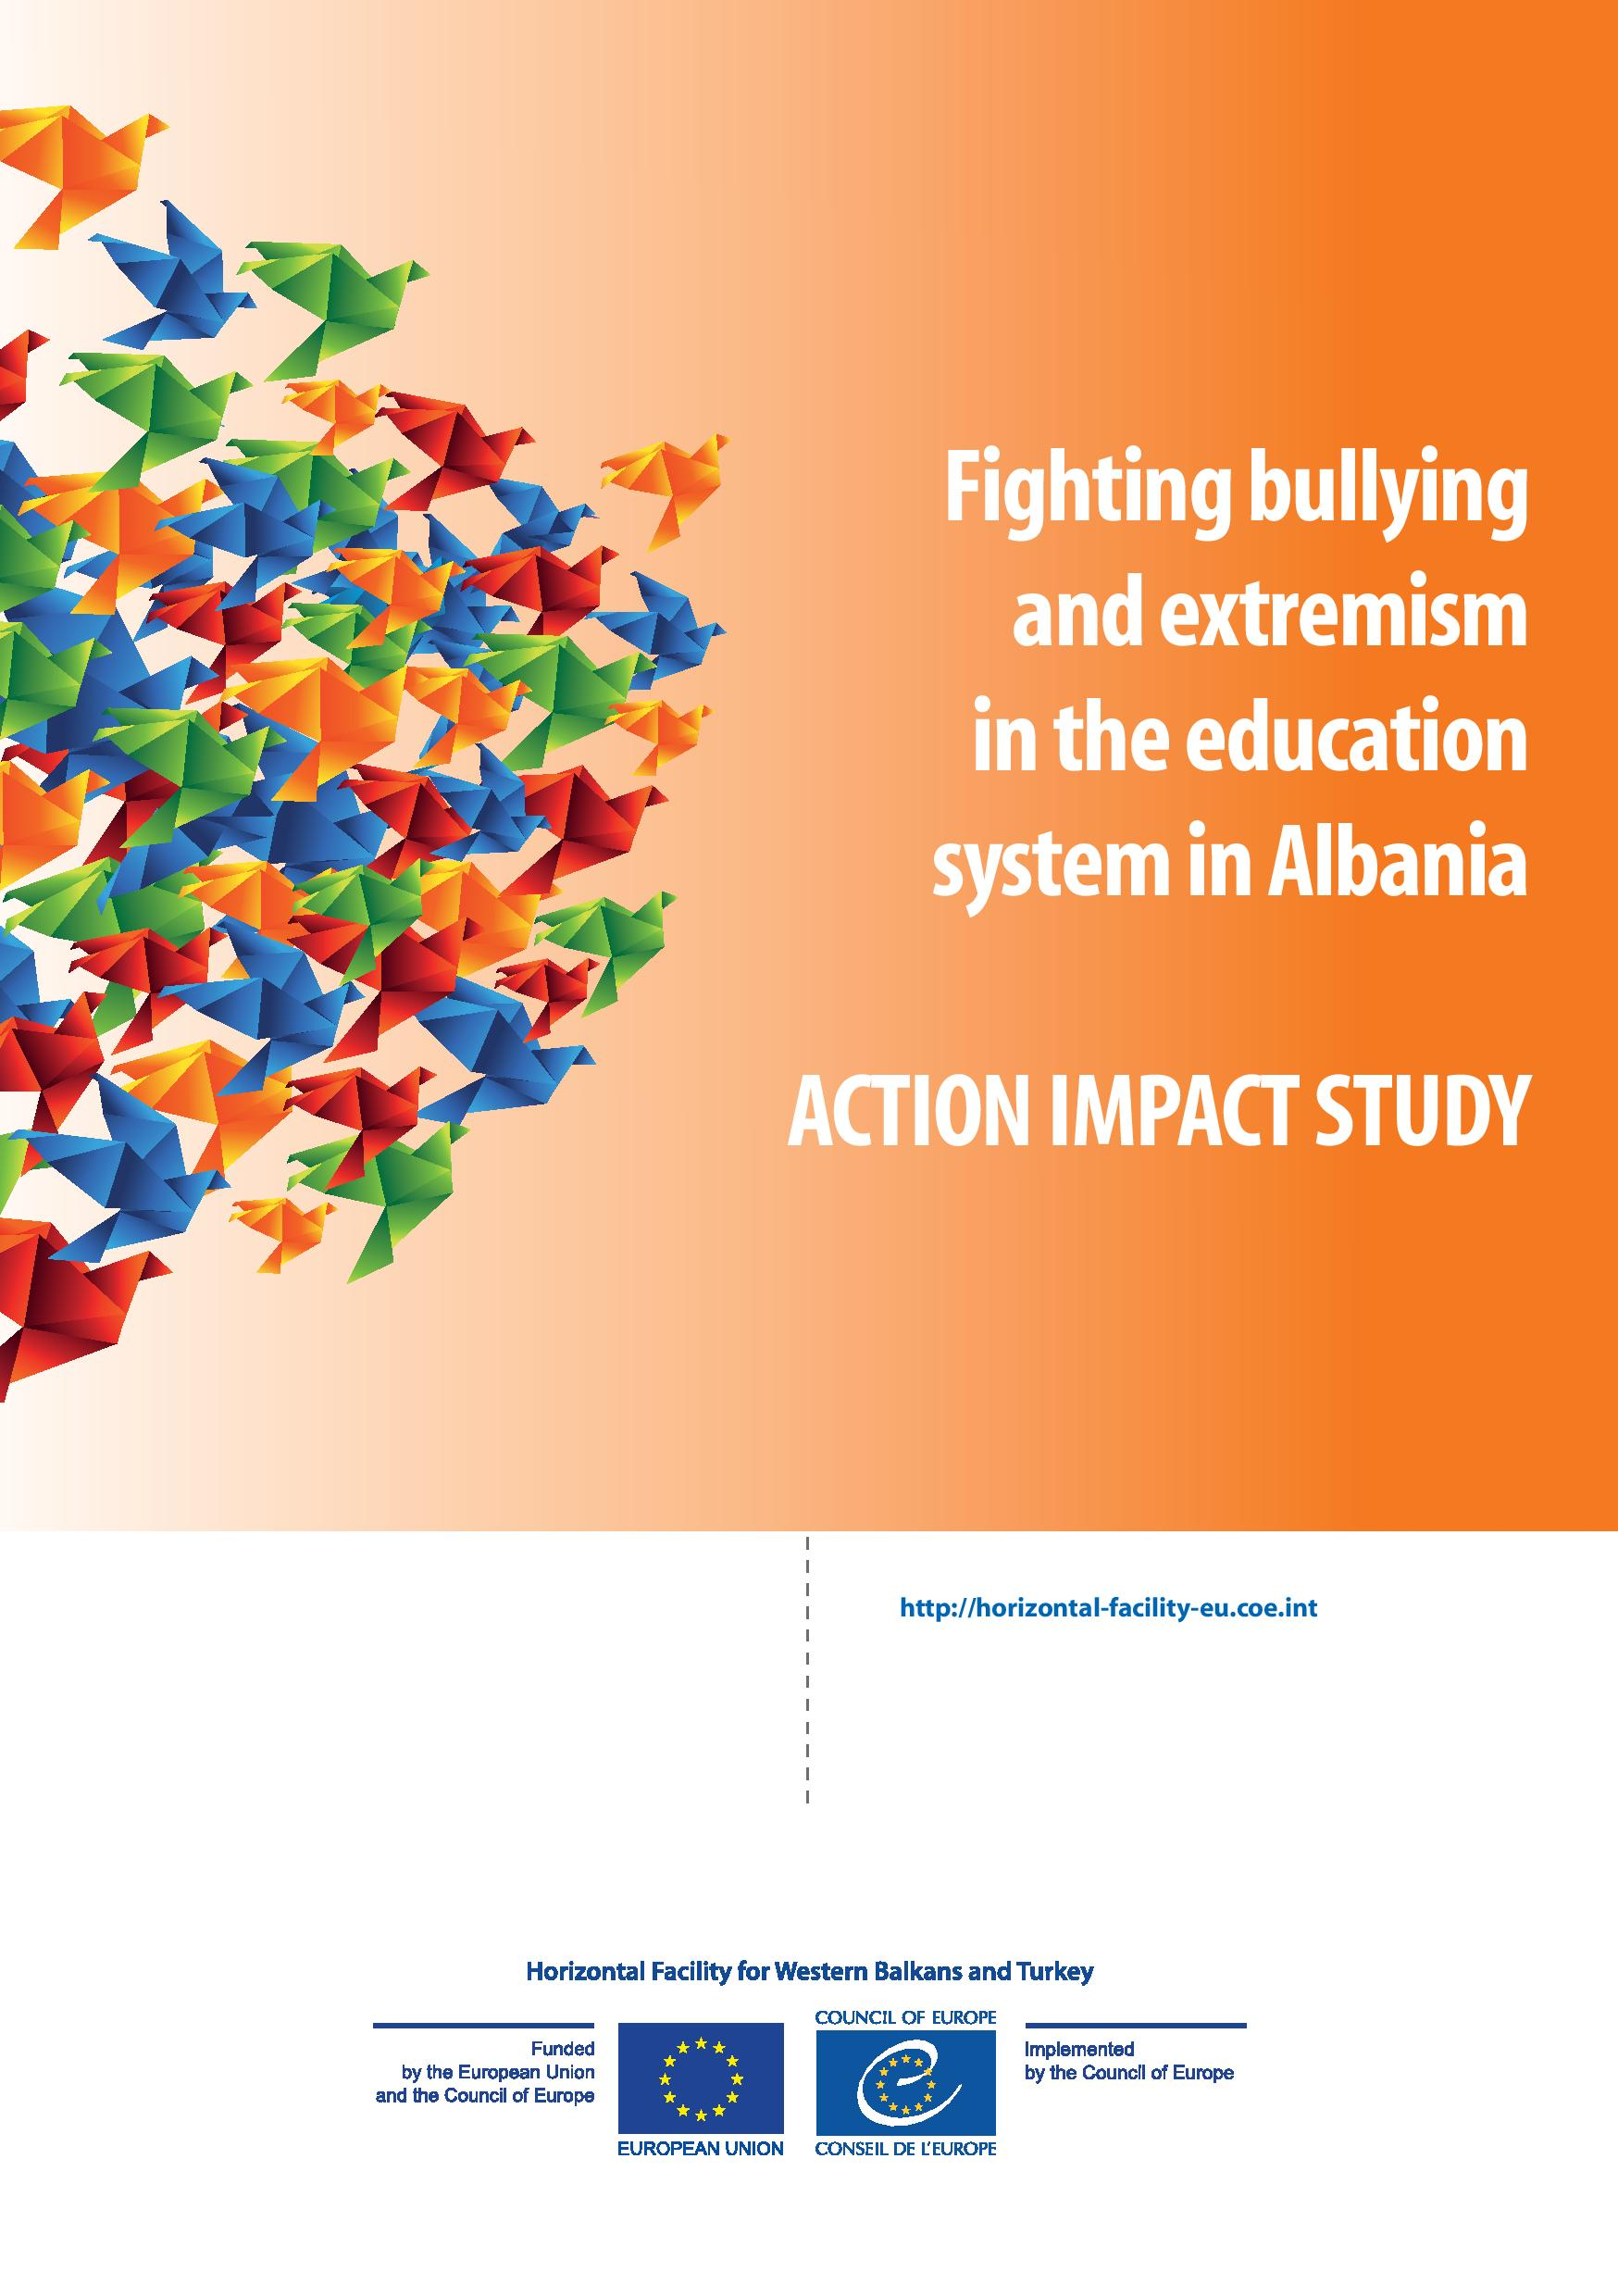 Bullying and Extremism in the Education System - Action Impact Study